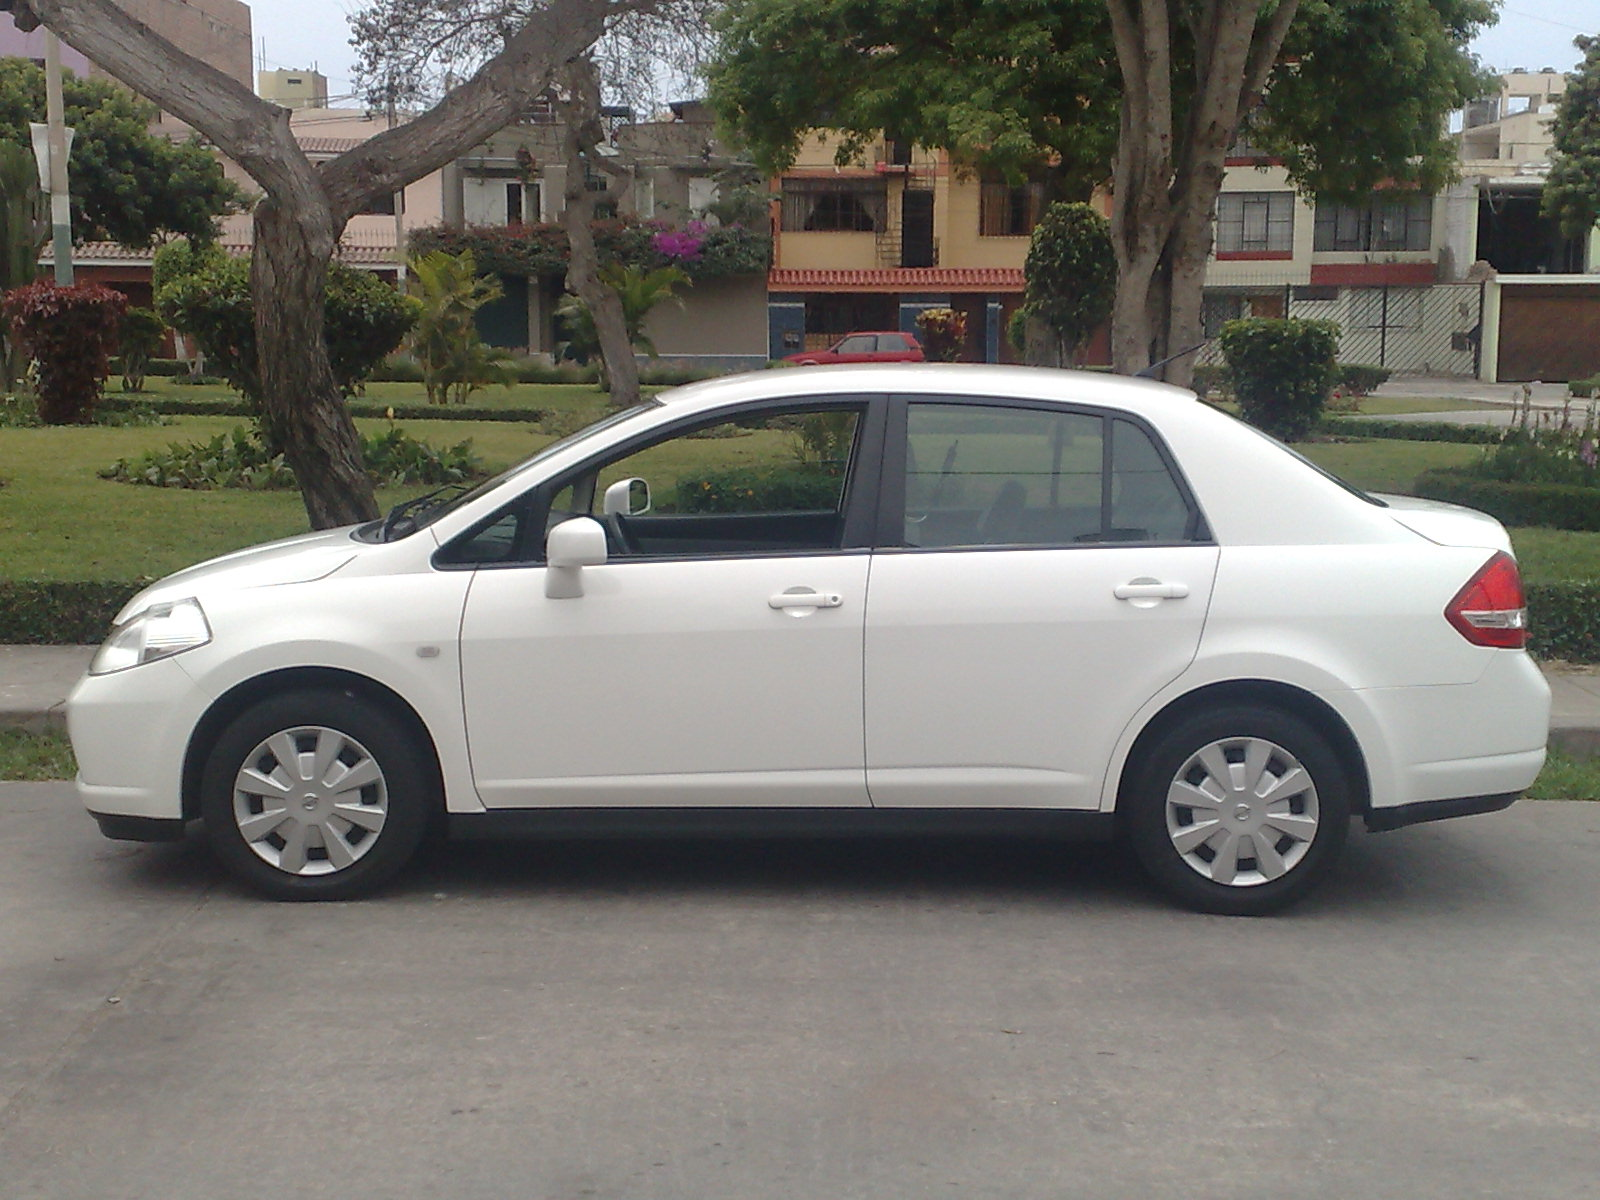 2009 Nissan Tiida Sedan Pictures Information And Specs